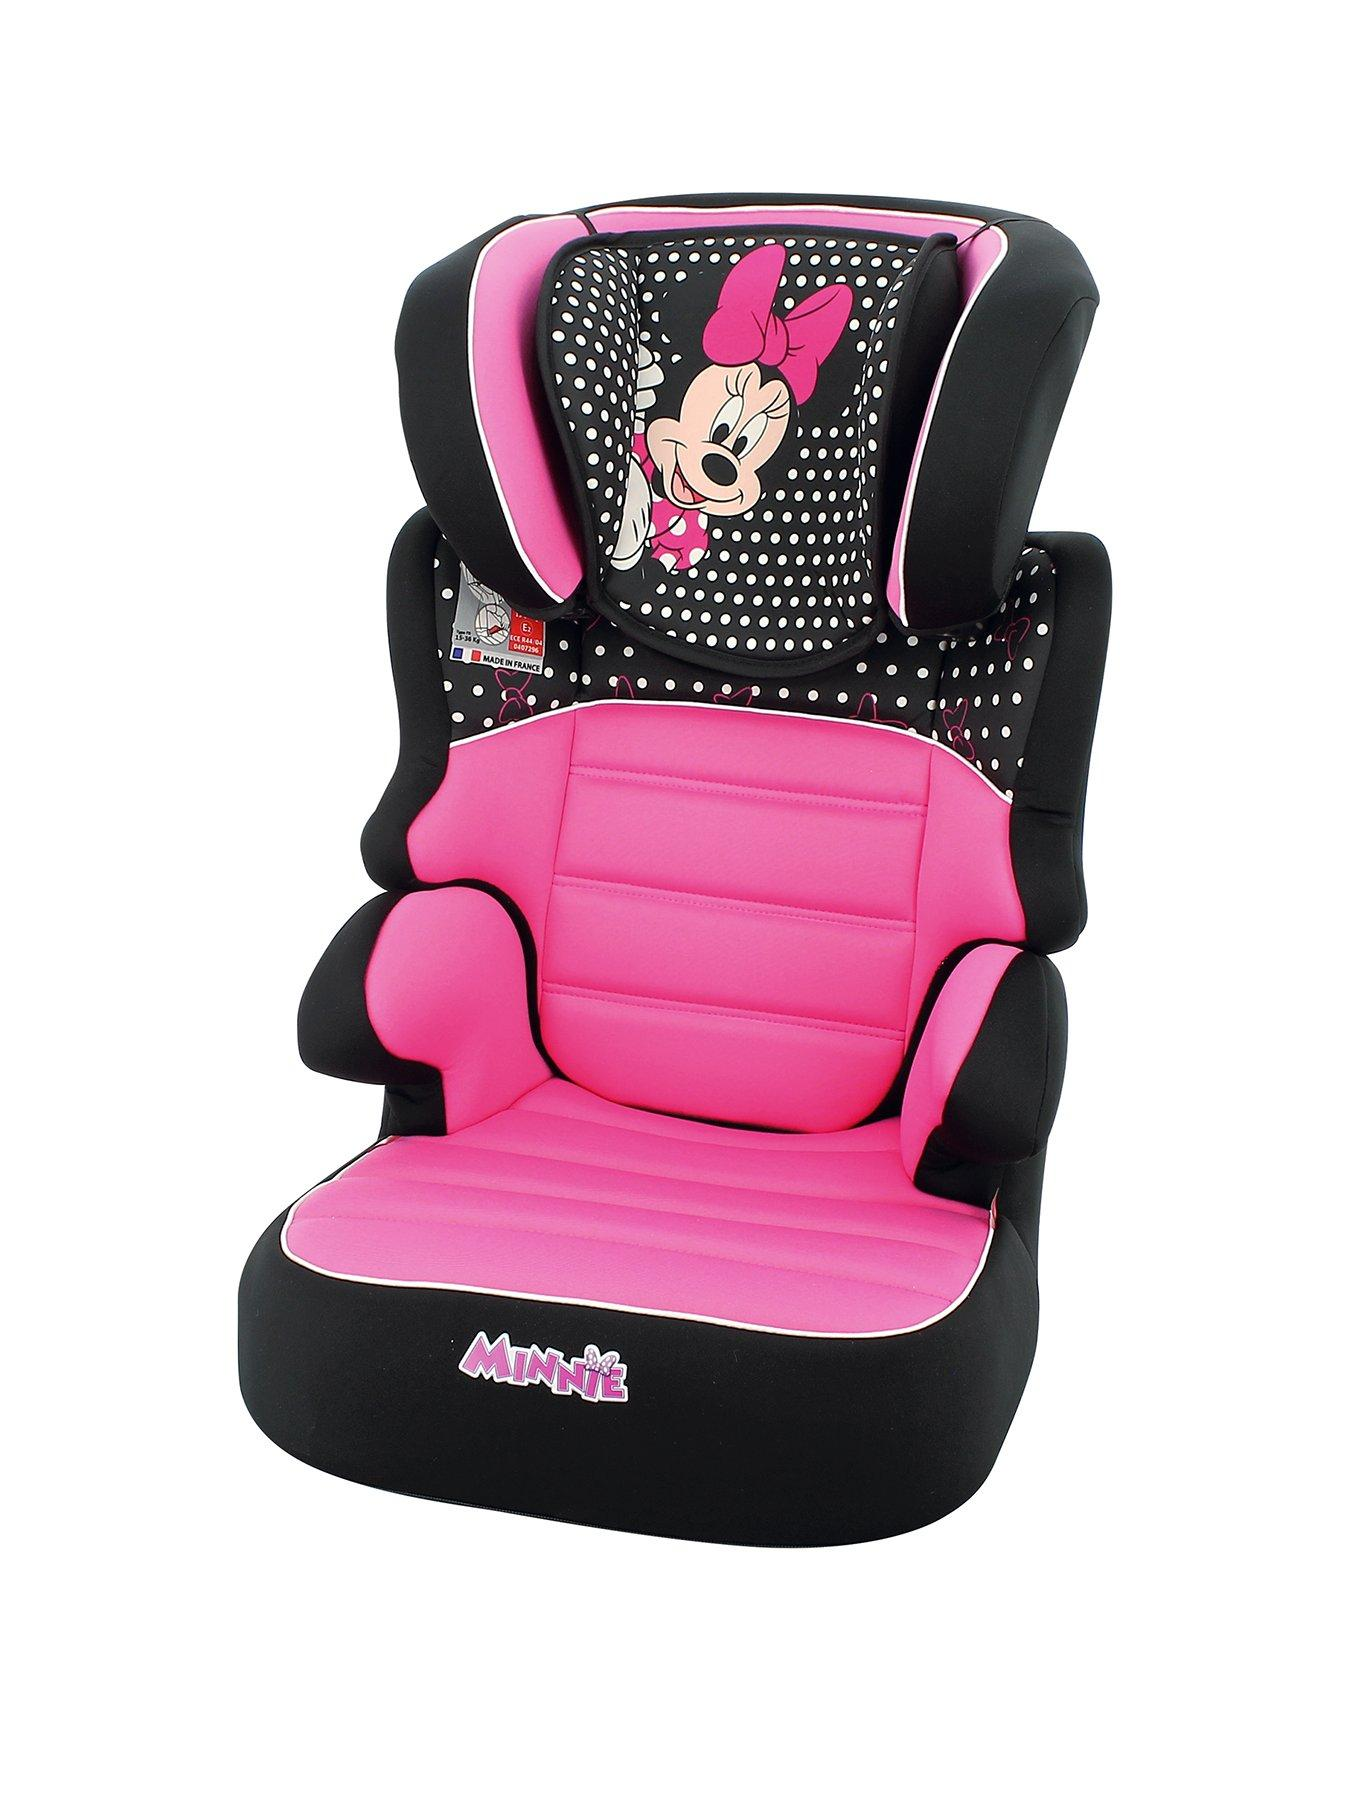 Personalised Princess Car Sun Shade For Baby Child 2